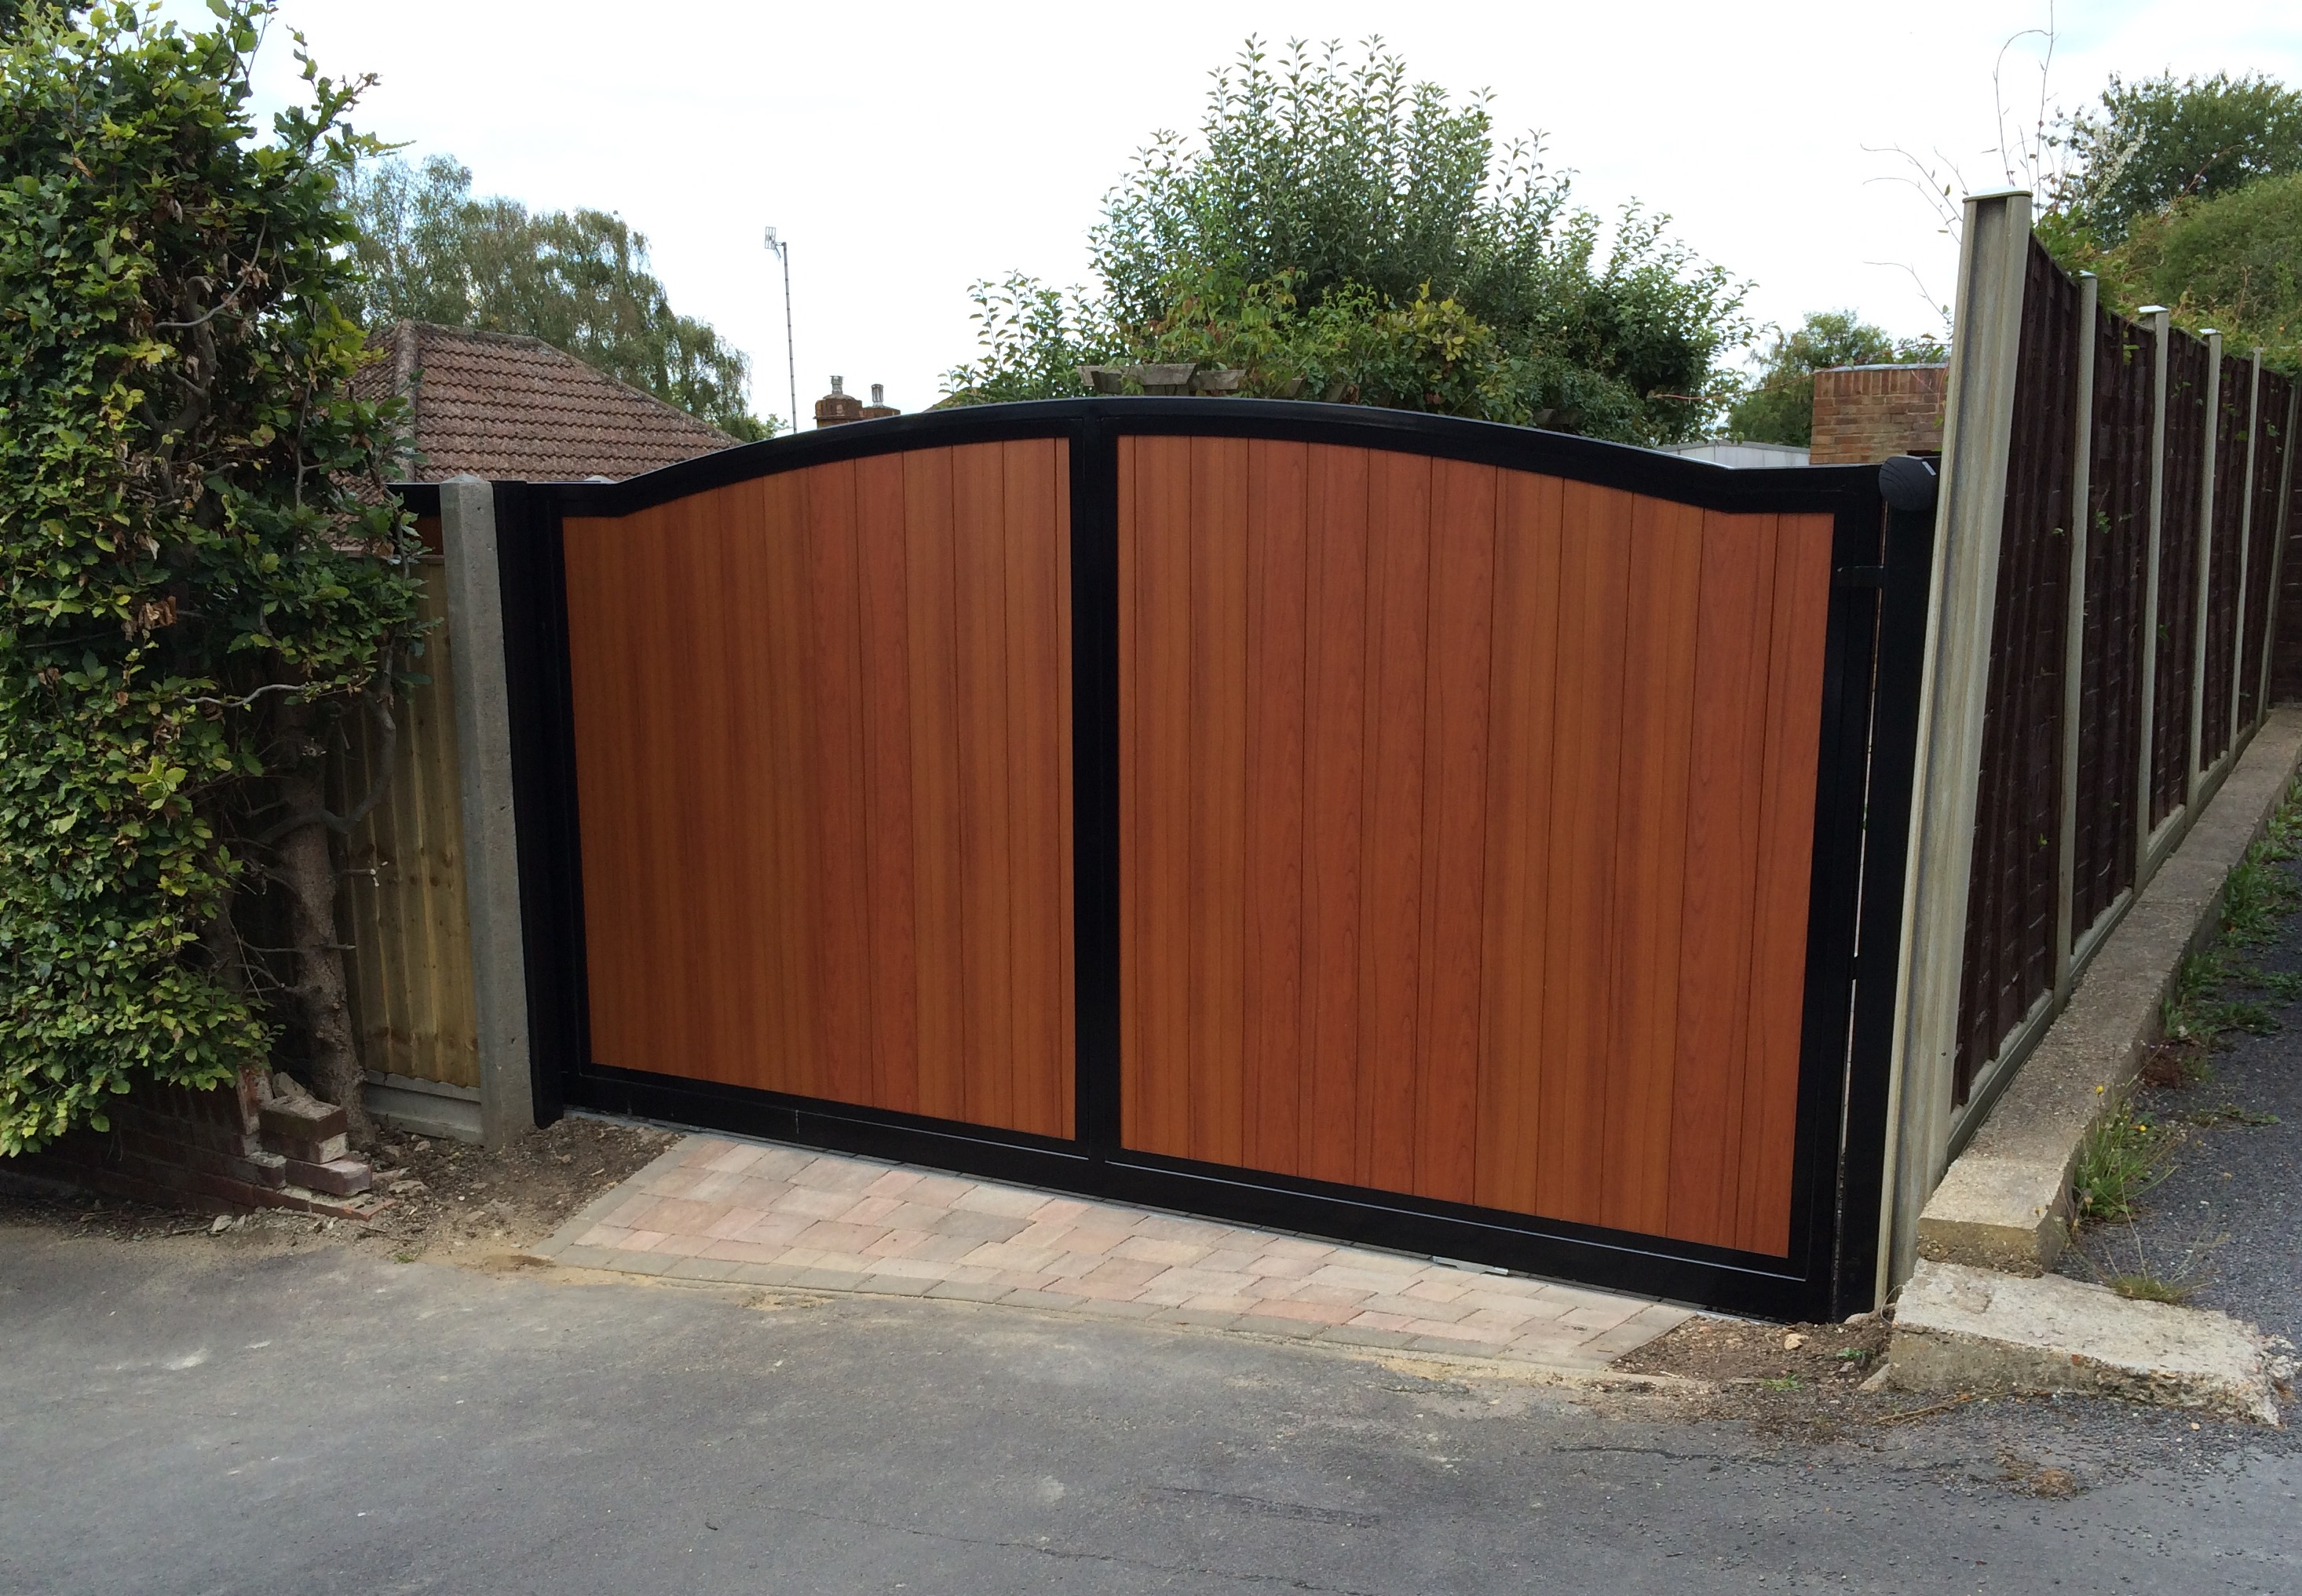 London gates grilles london gates grilles ltd for Wooden sliding driveway gates